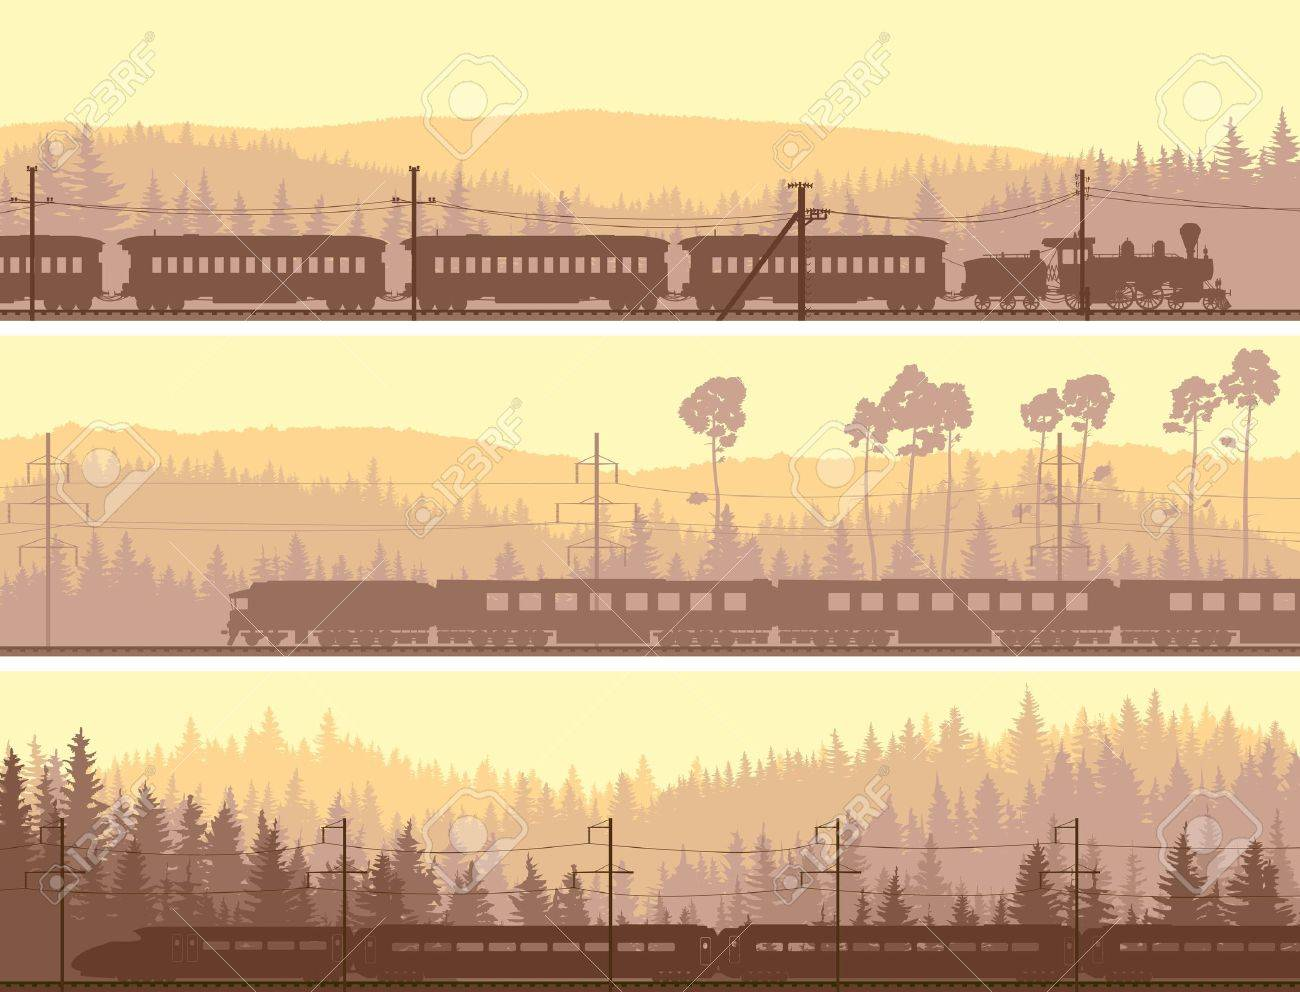 Horizontal abstract banners: locomotive and the high speed train on background hills of coniferous wood. - 19377717